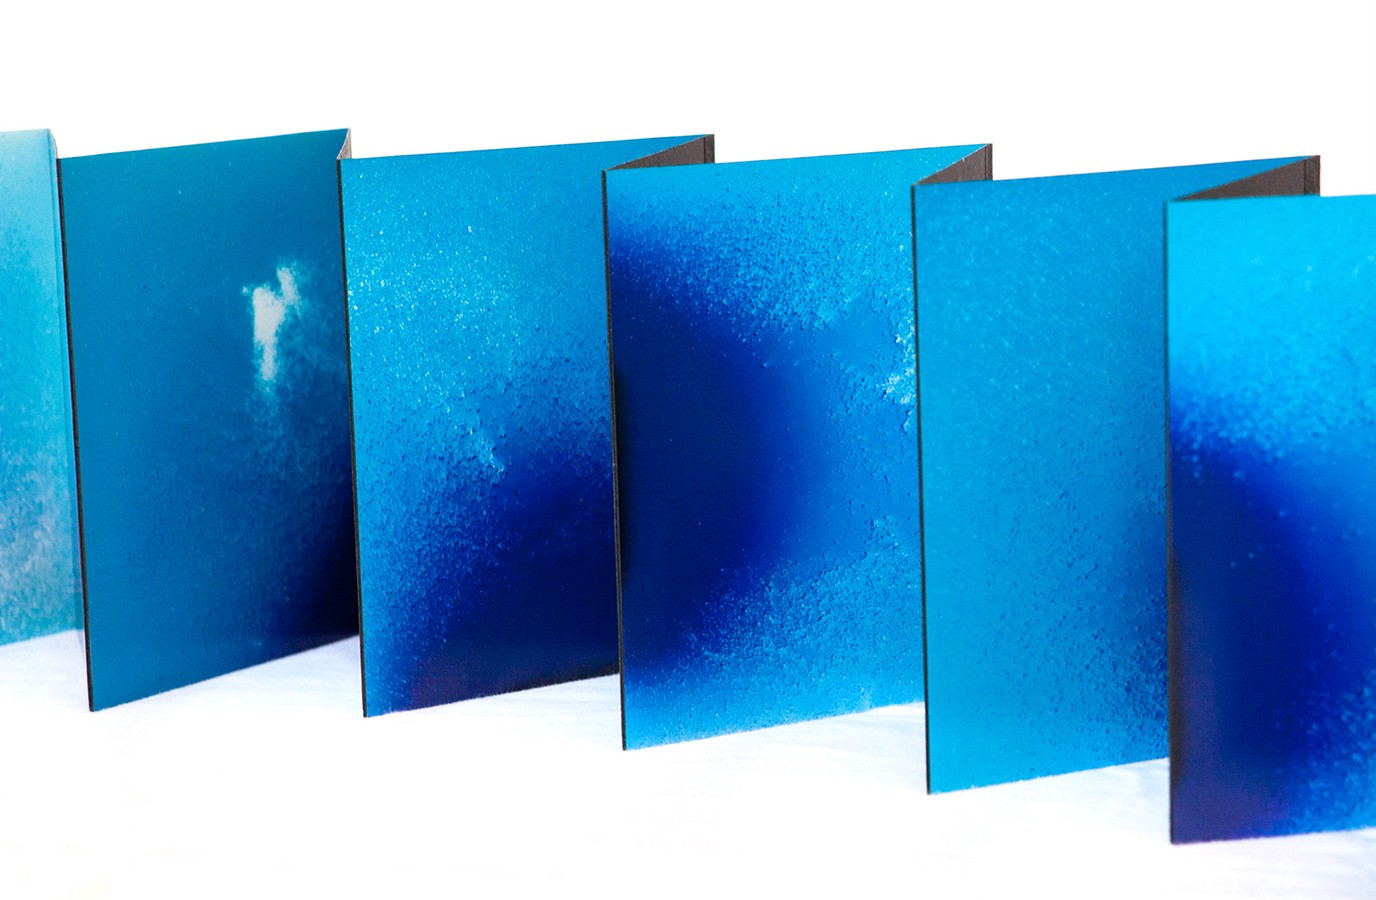 Saturated blue pages of an art book accordion out, zigzagging across the photo.